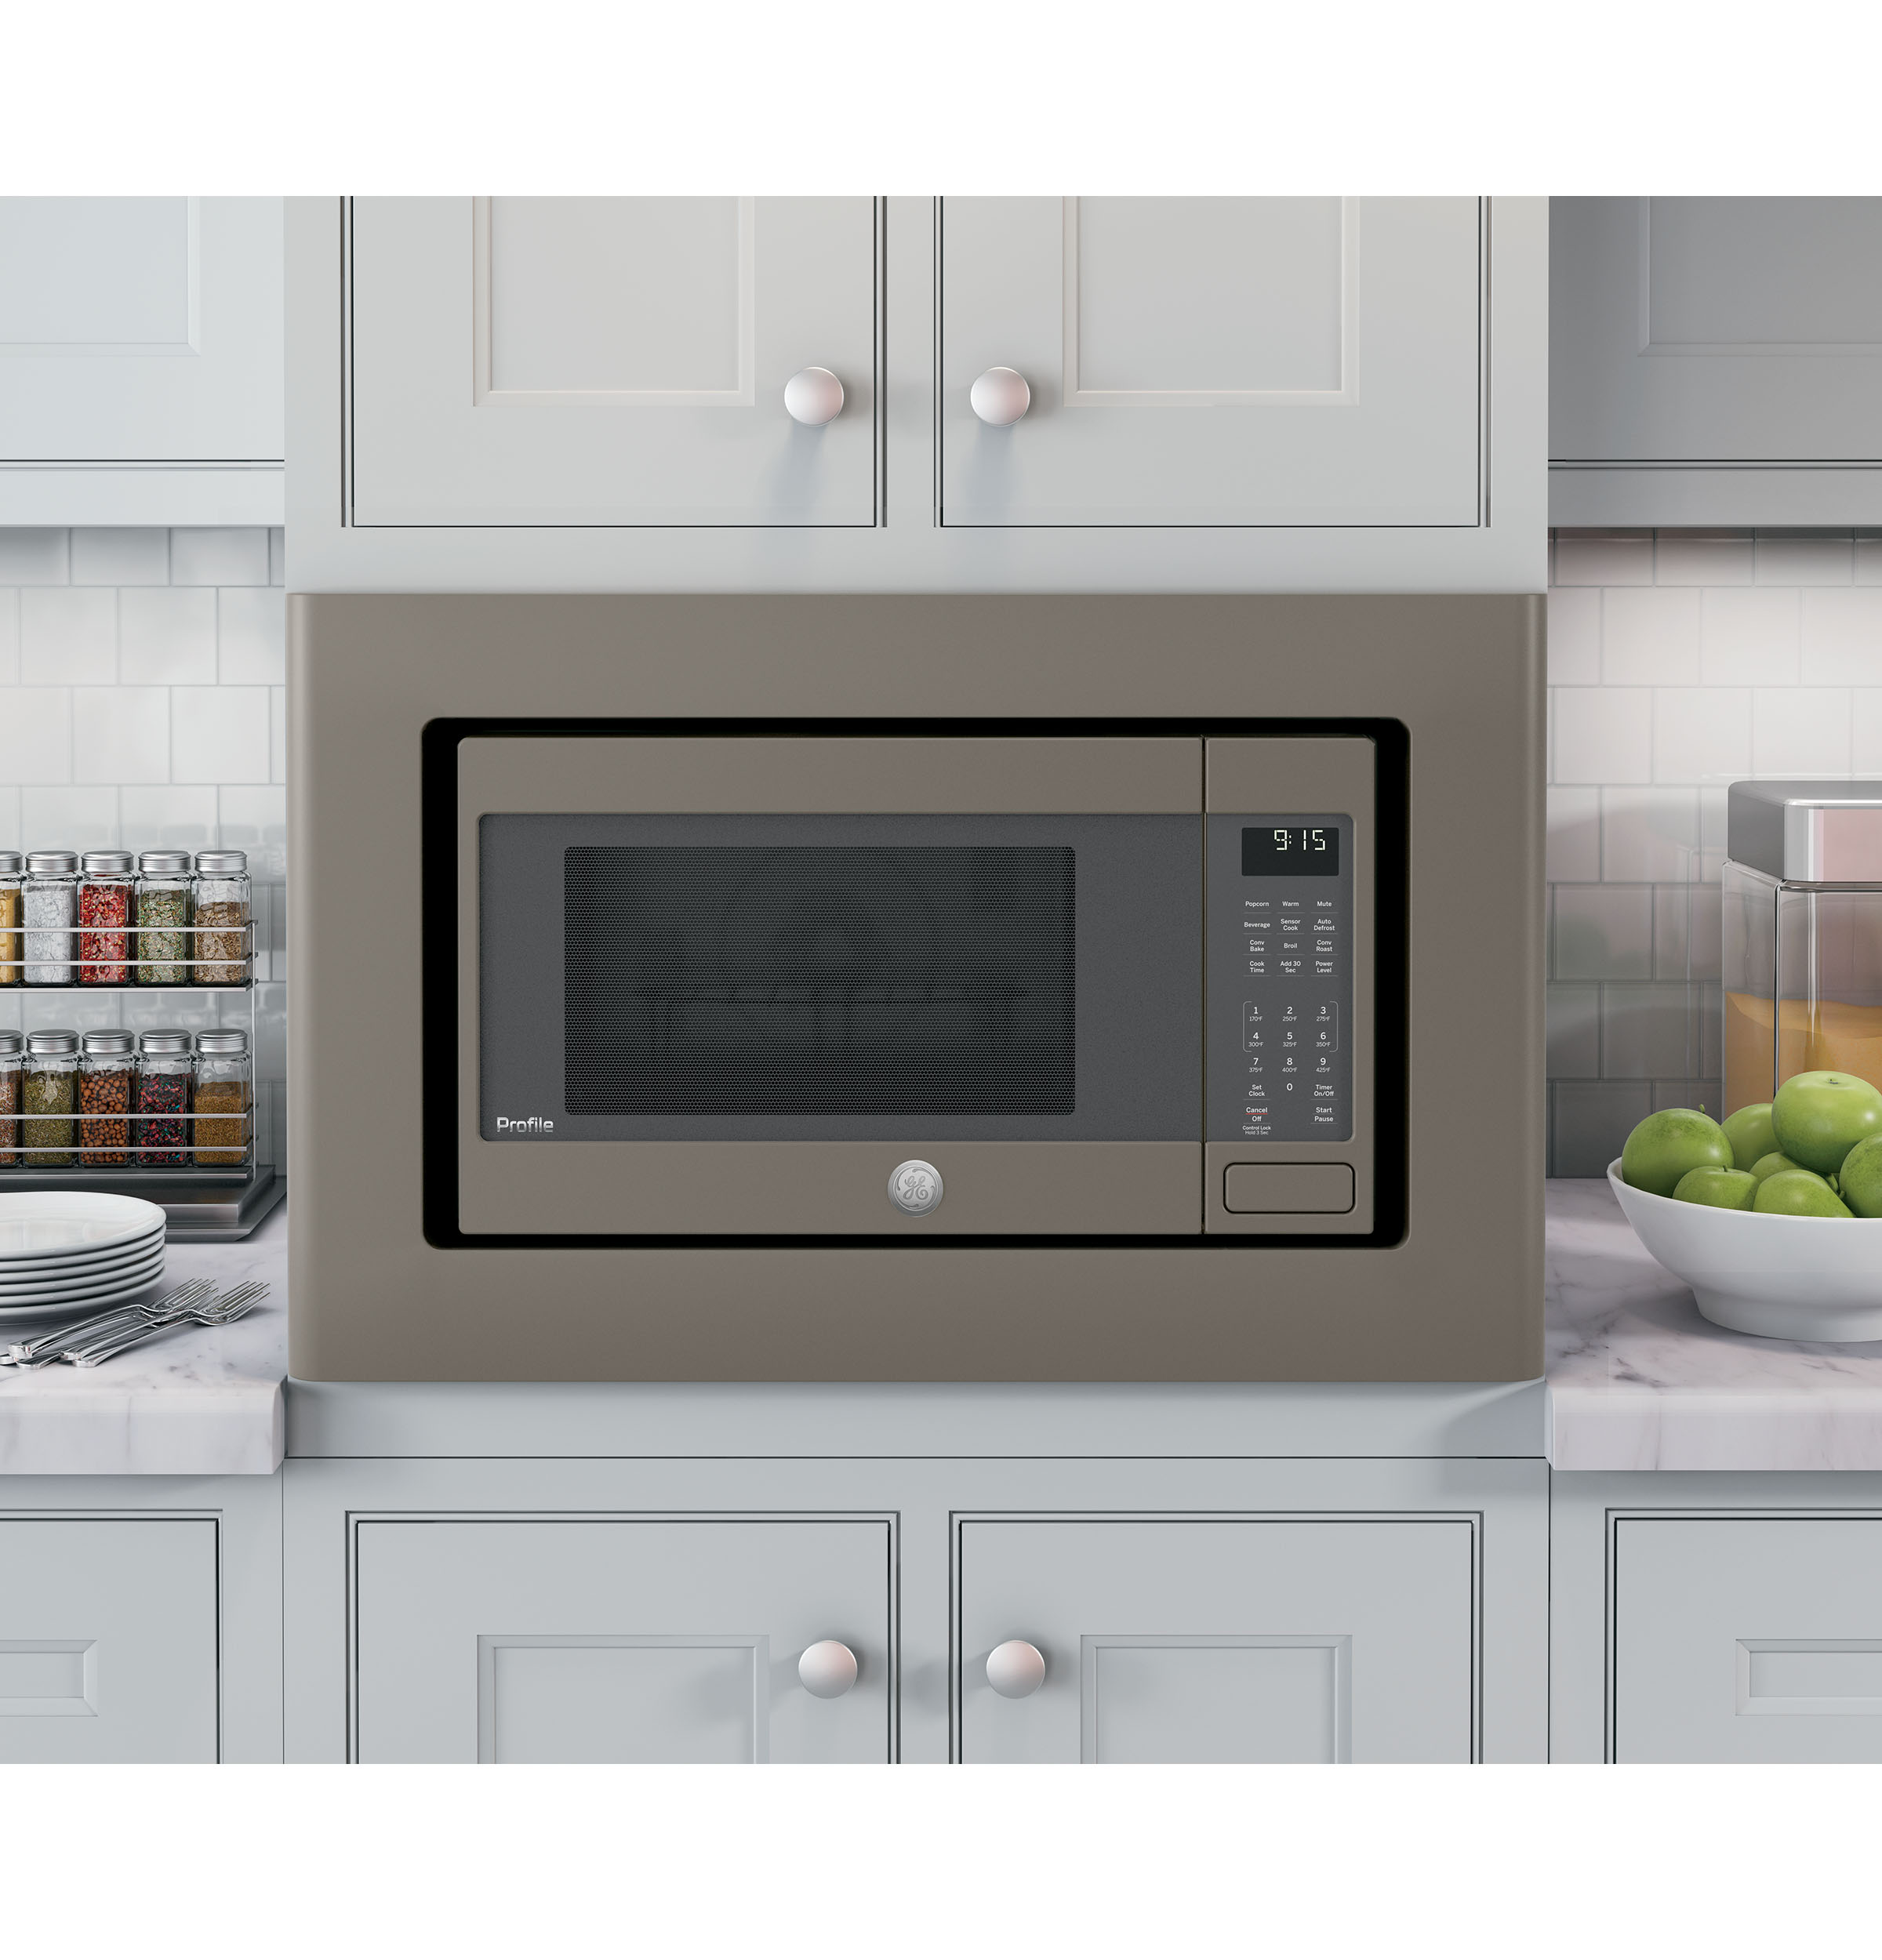 oven convection stainless steel xl countertop large toasters slice chefman products ovens countertops ss